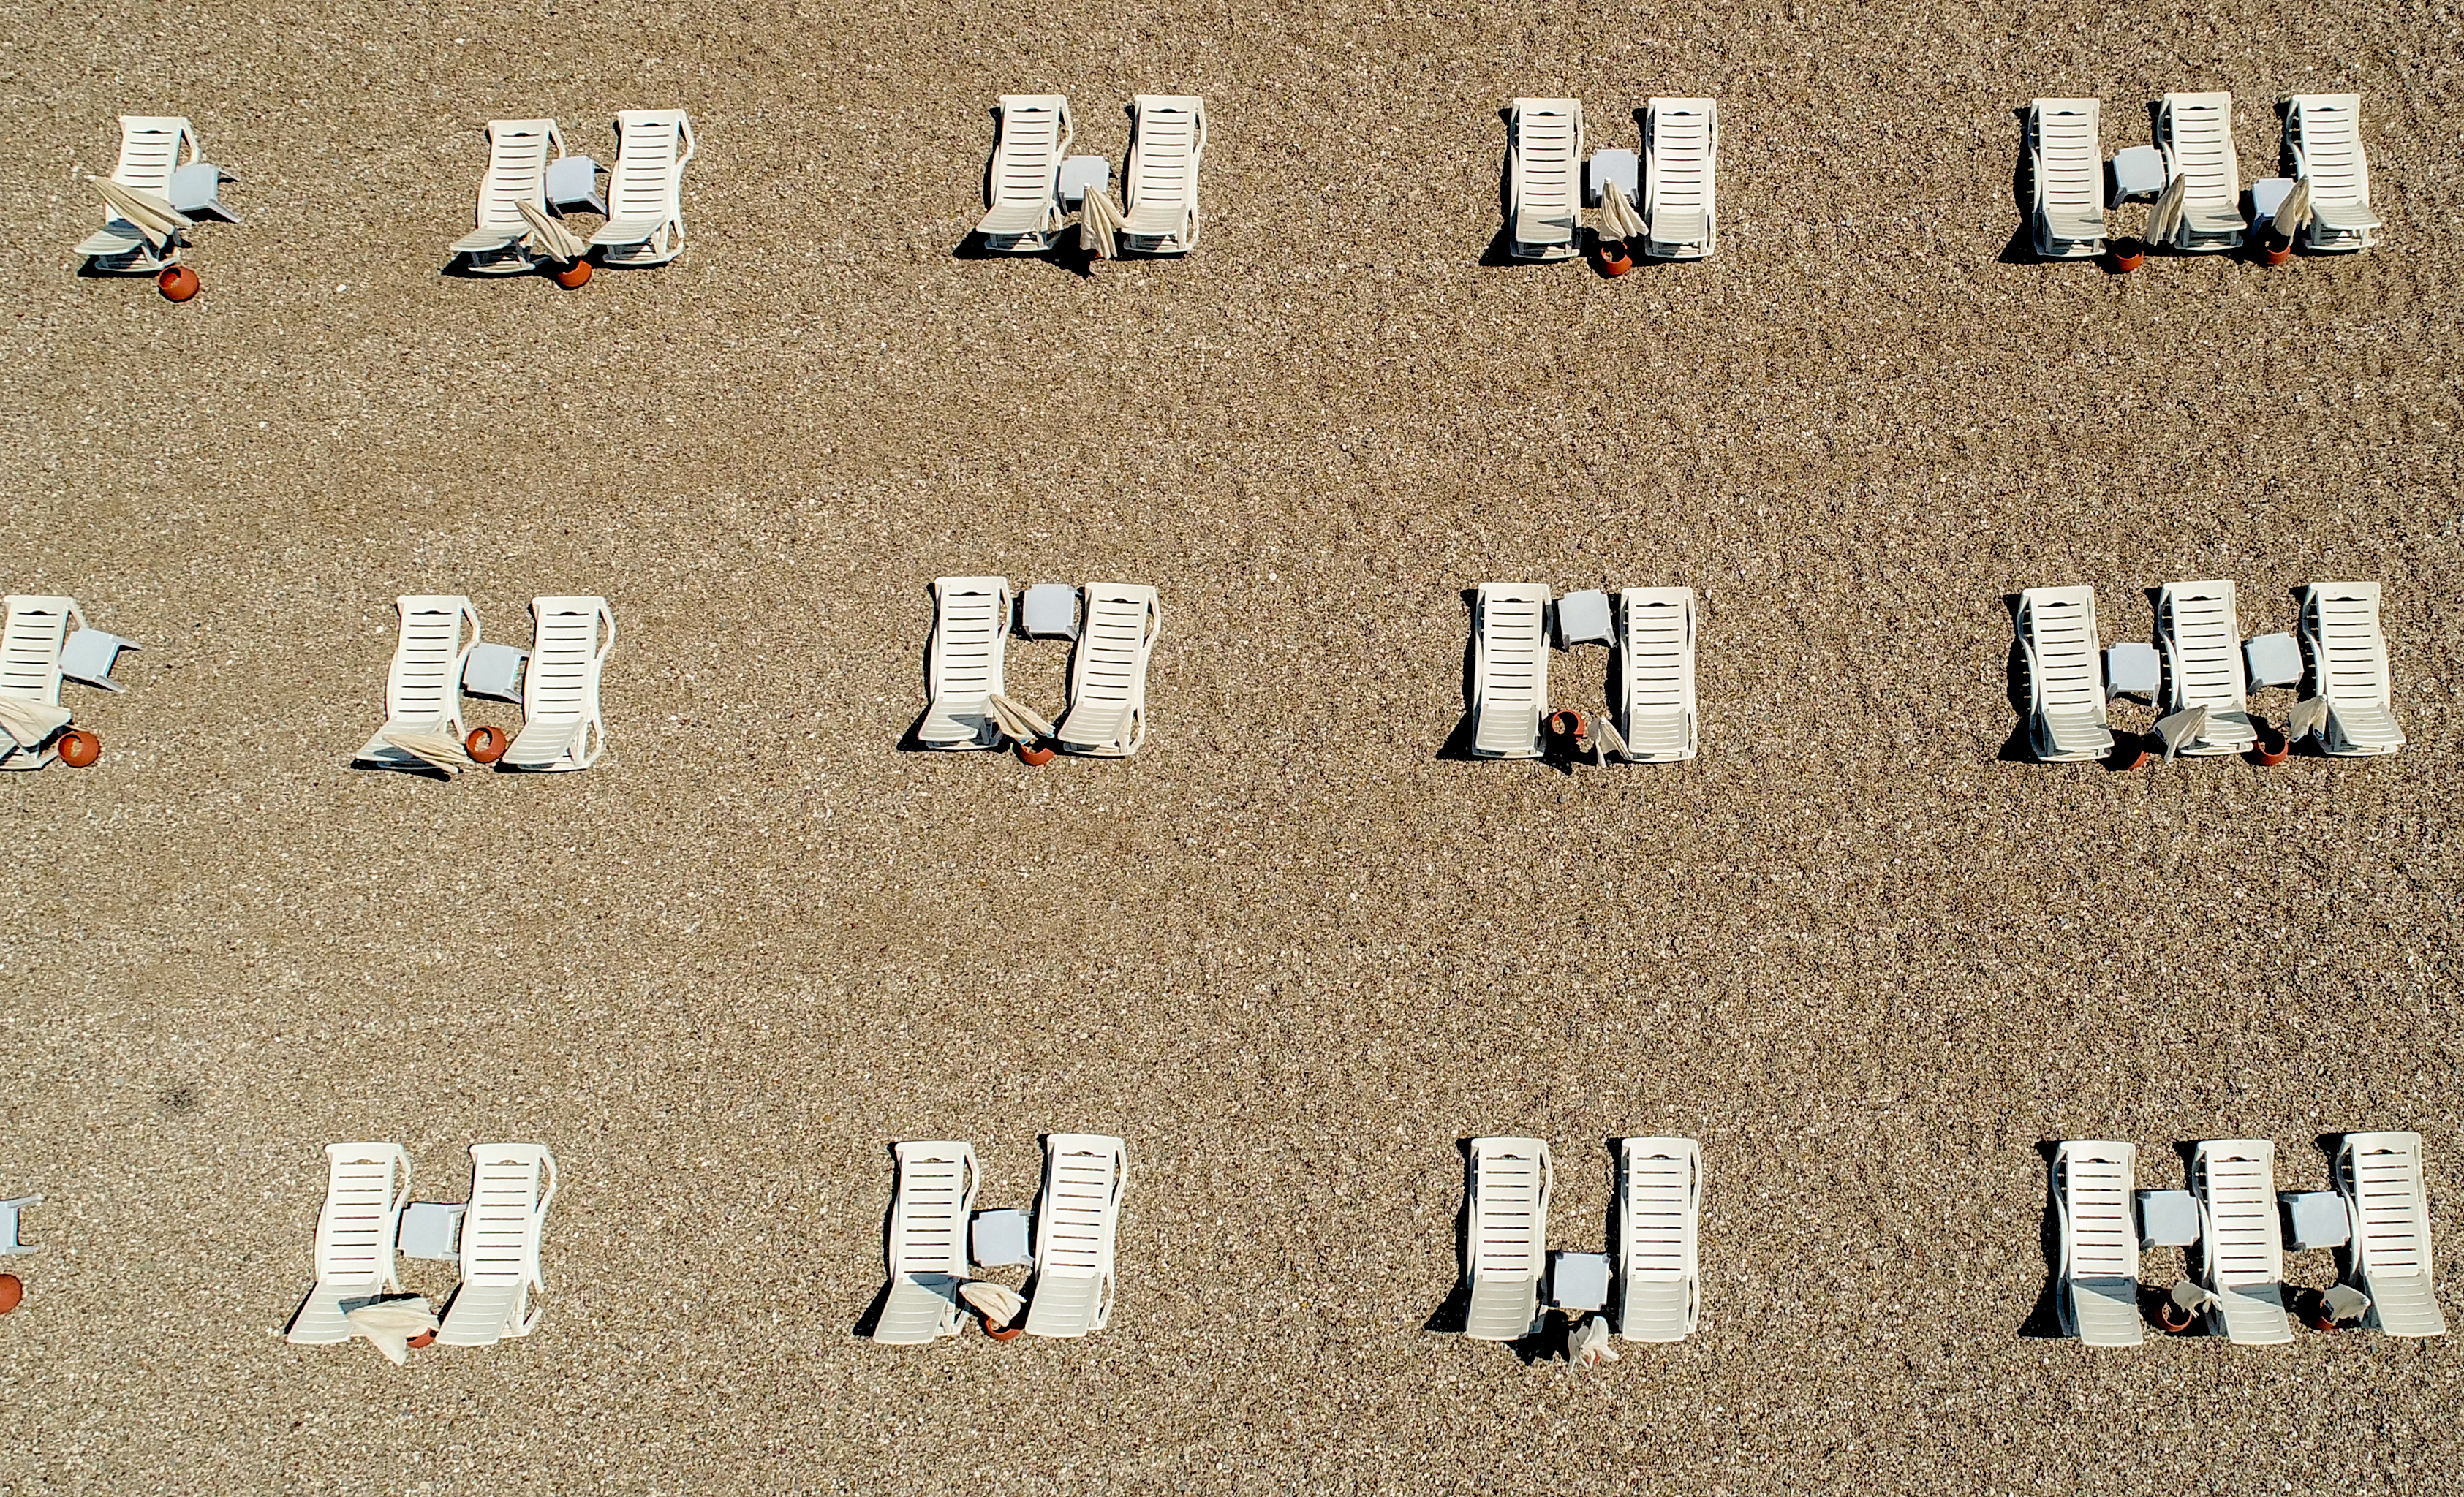 ANTALYA, TURKEY - MAY 28: An aerial view of sunbeds placed to comply the rules of social distance near Konyaalti Coastline within the coronavirus (Covid-19) pandemic measures in Antalya, Turkey on May 28, 2020. (Photo by Mustafa Ciftci/Anadolu Agency via Getty Images)